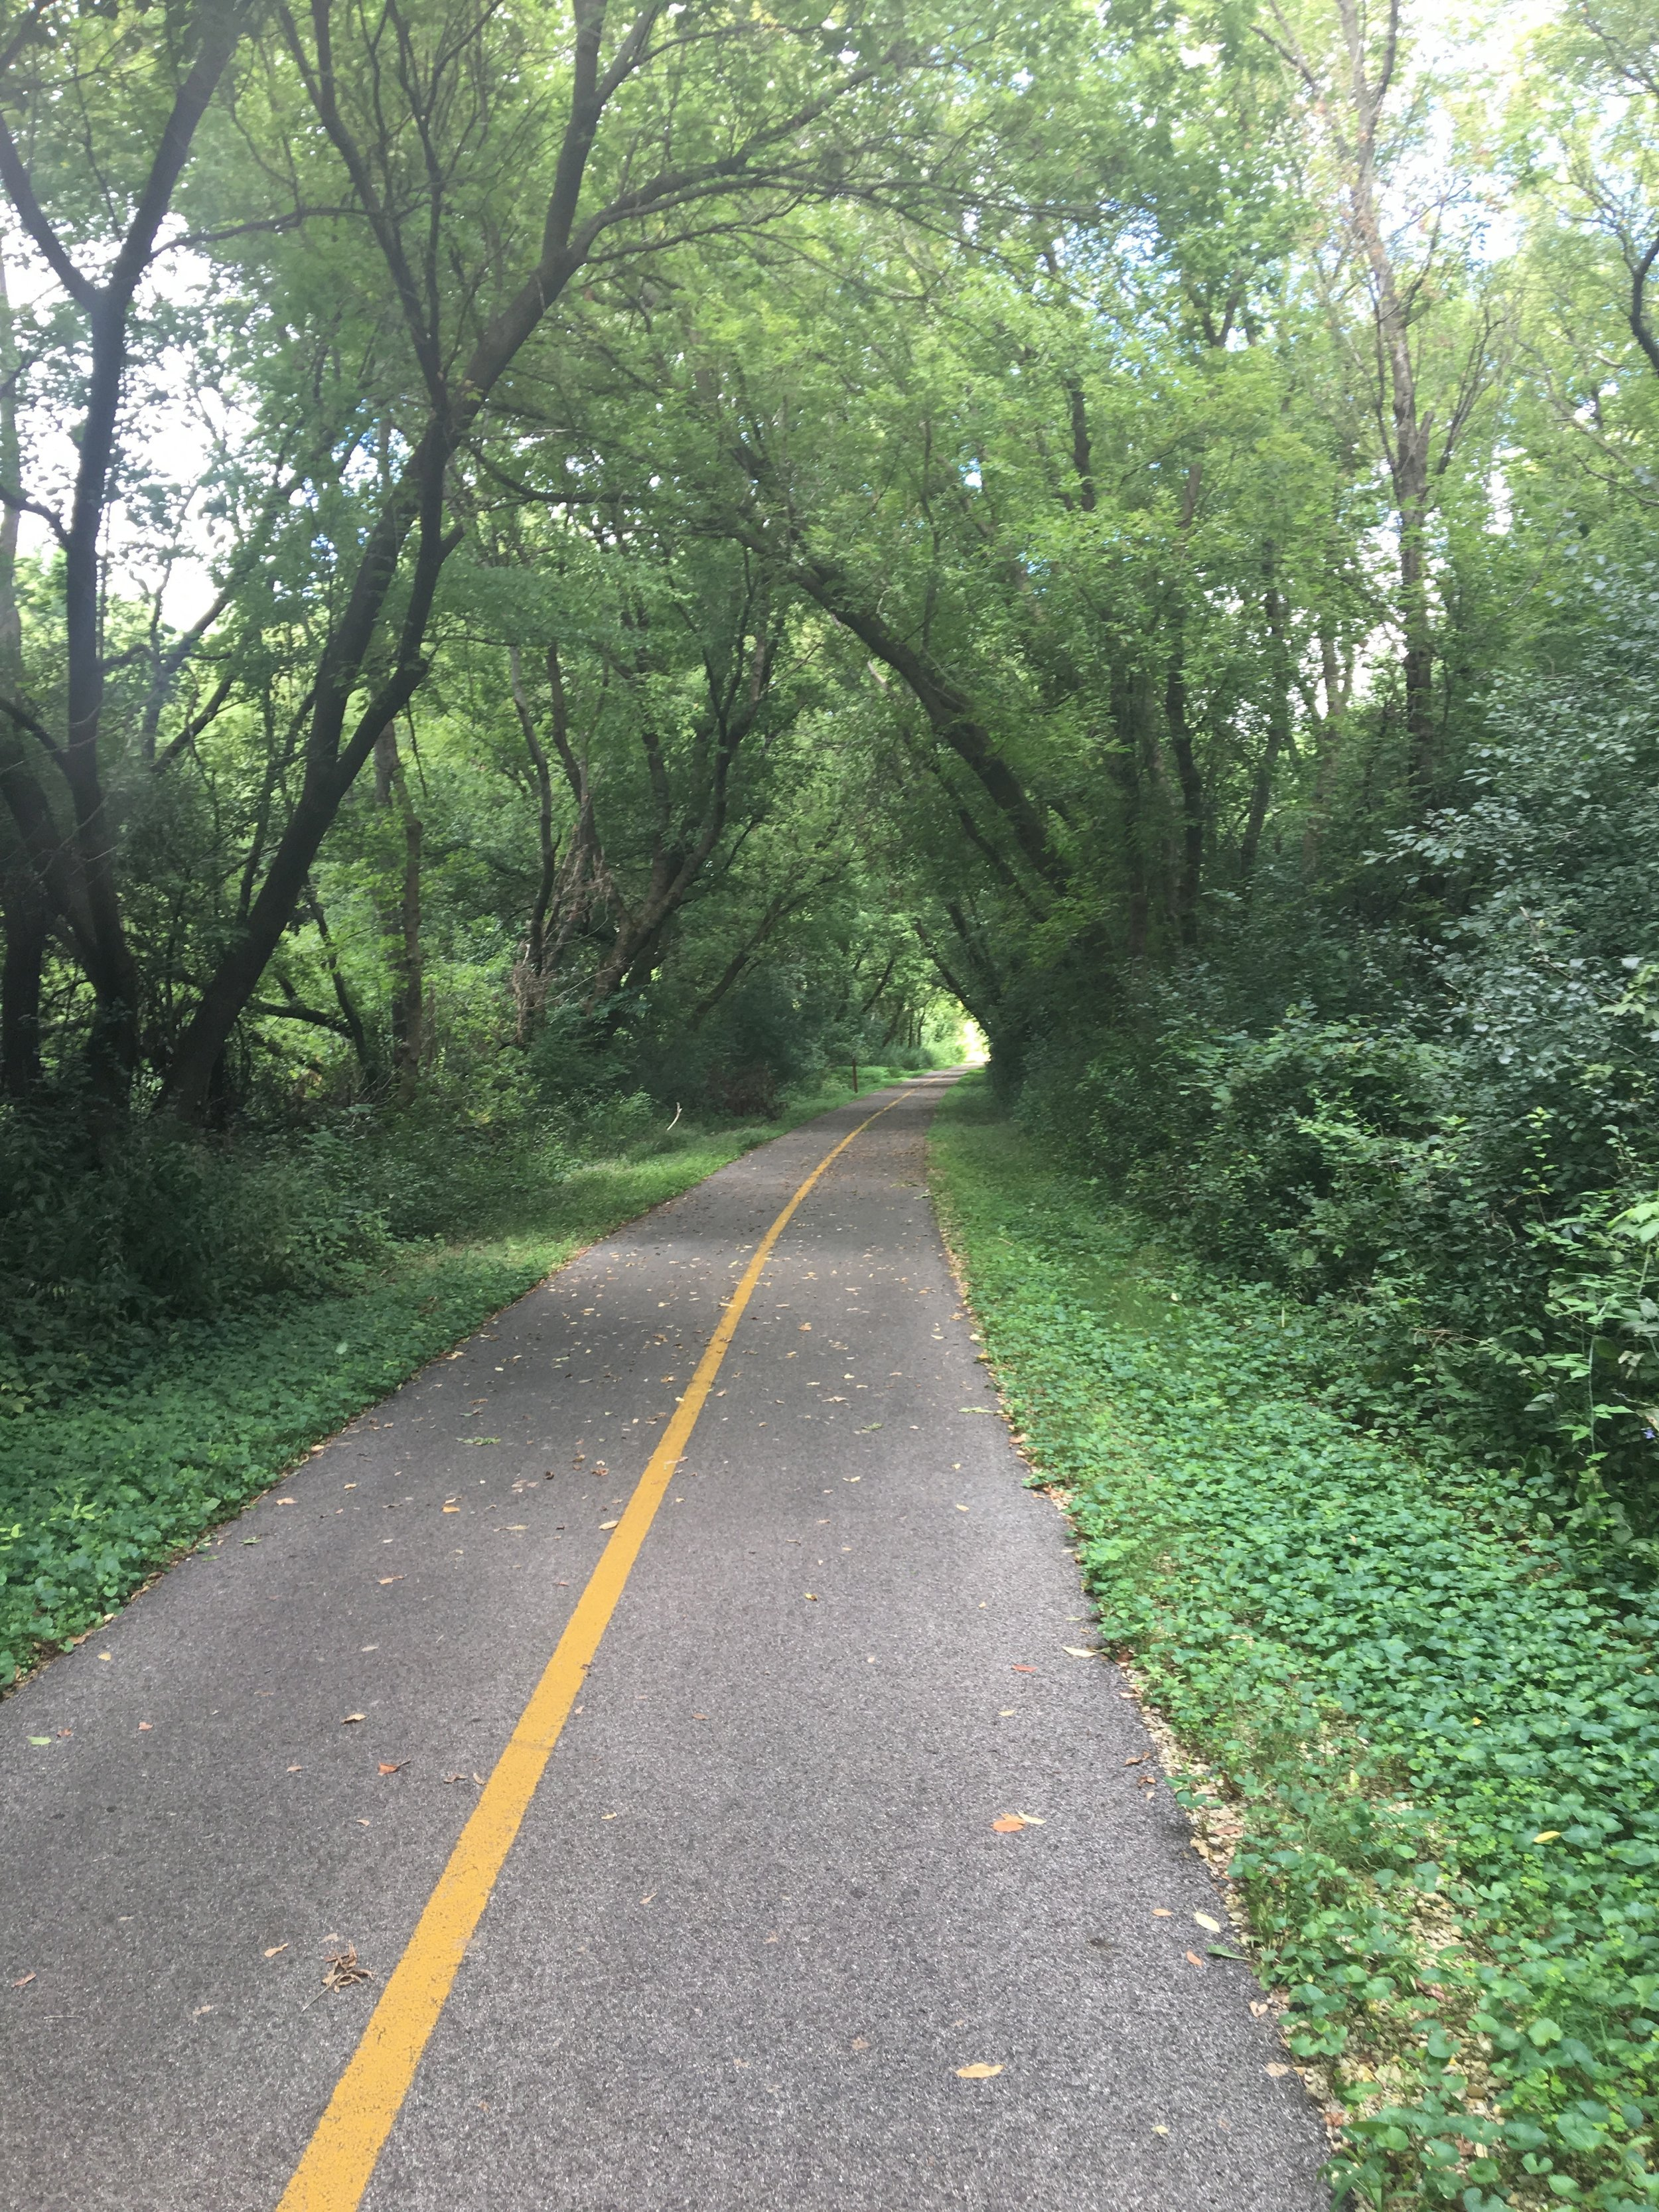 I went to the local bike trail and walked 4 miles to the next town and back.